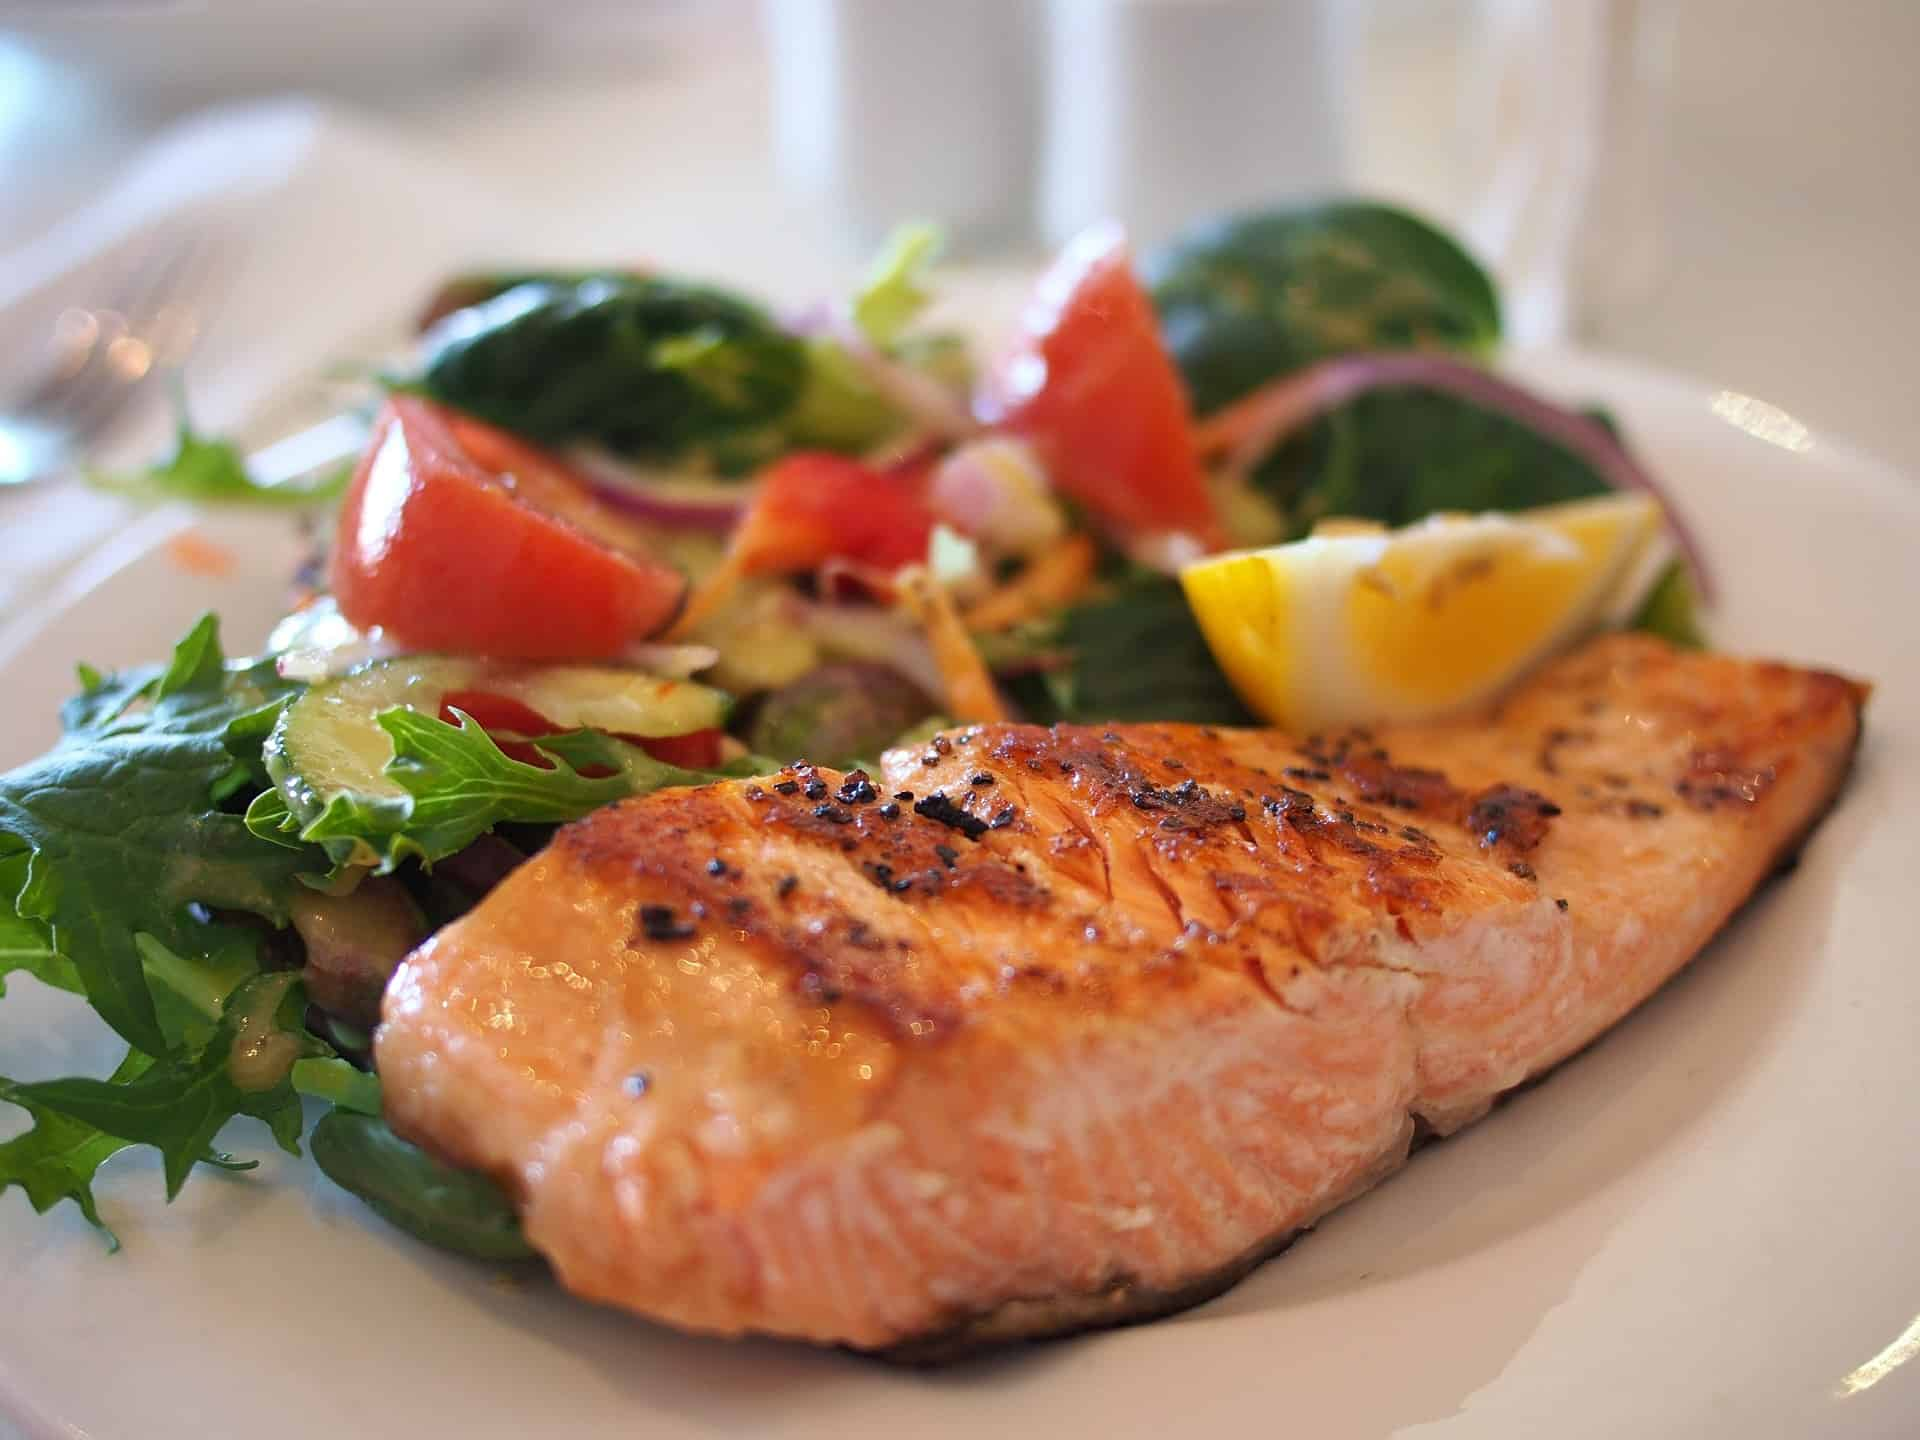 baked salmon and green leafy salad with tomatoes